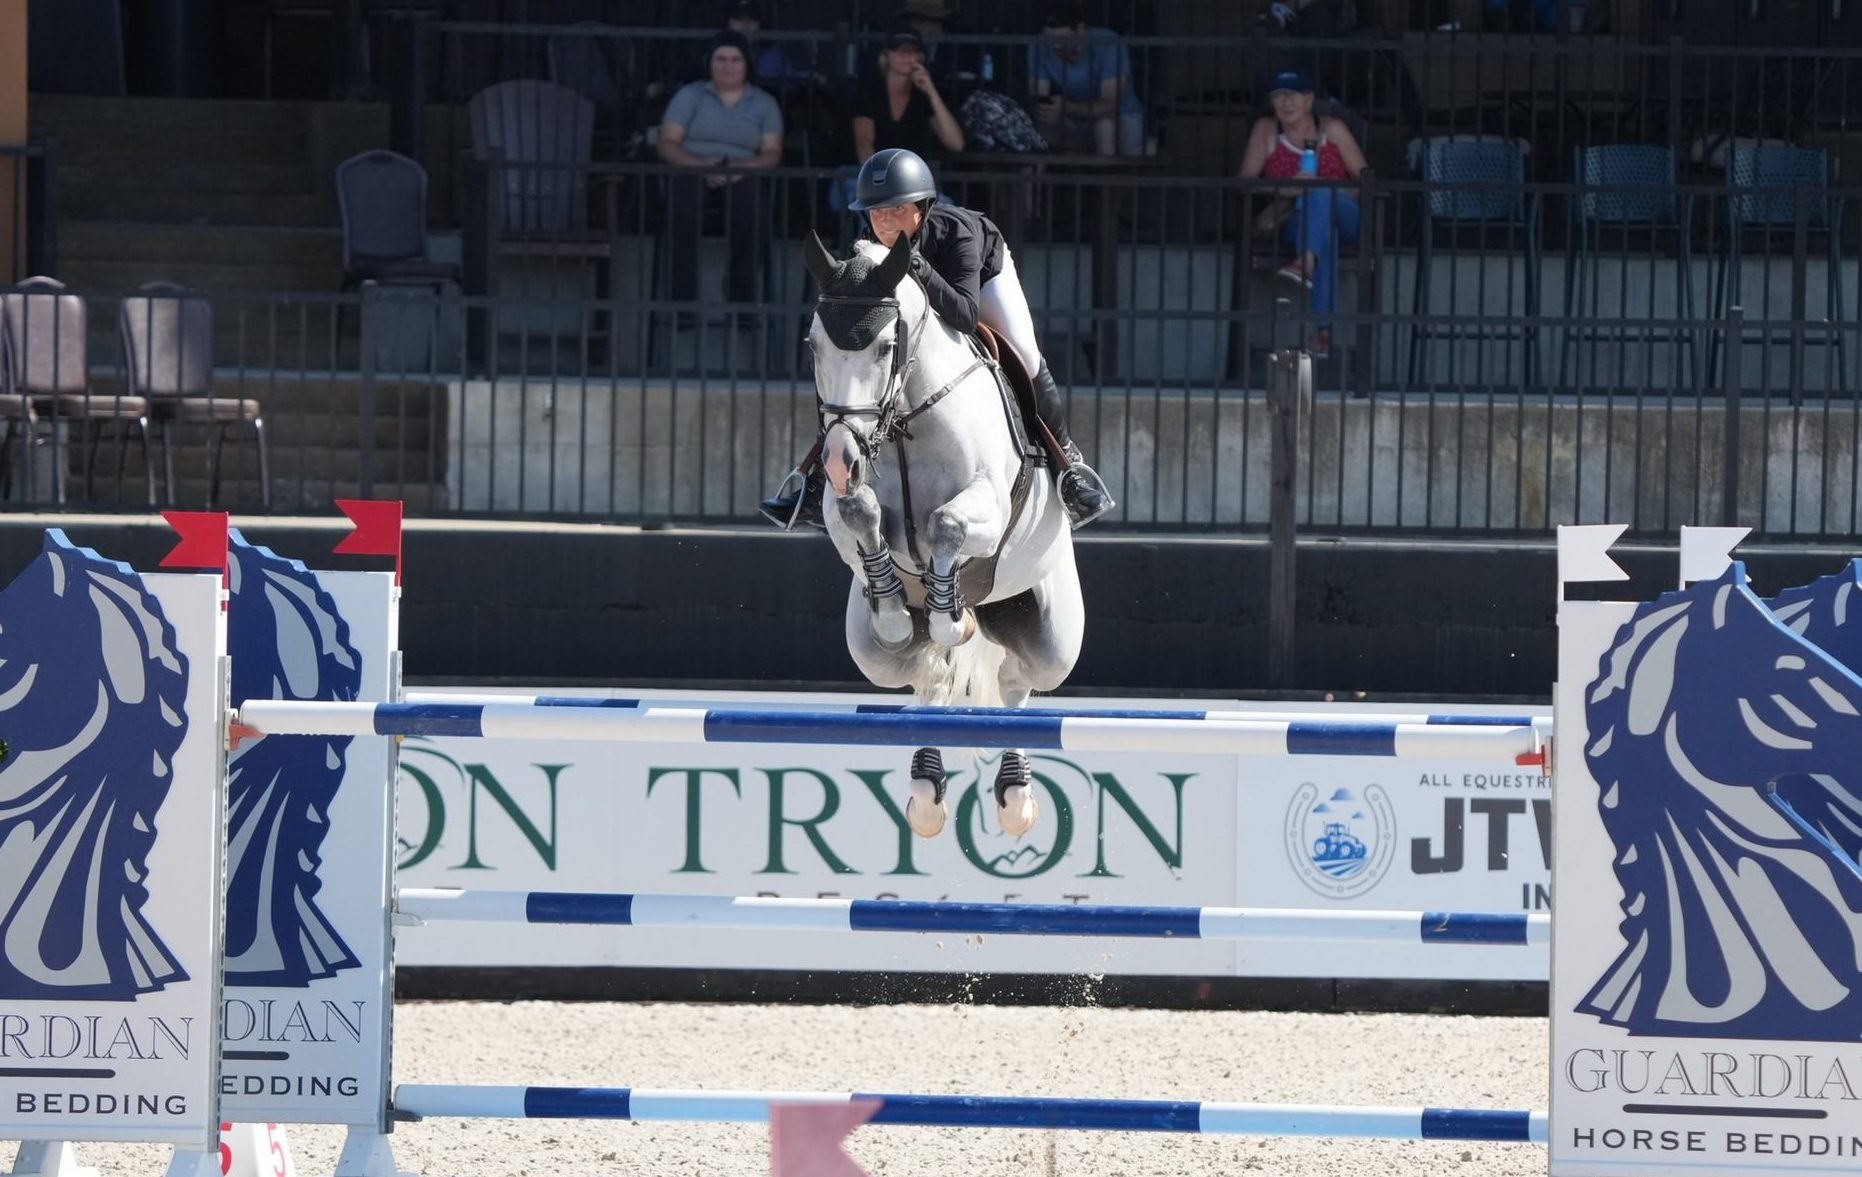 4th place for Guess What and Taylor St. Jacques at Tryon Resort!